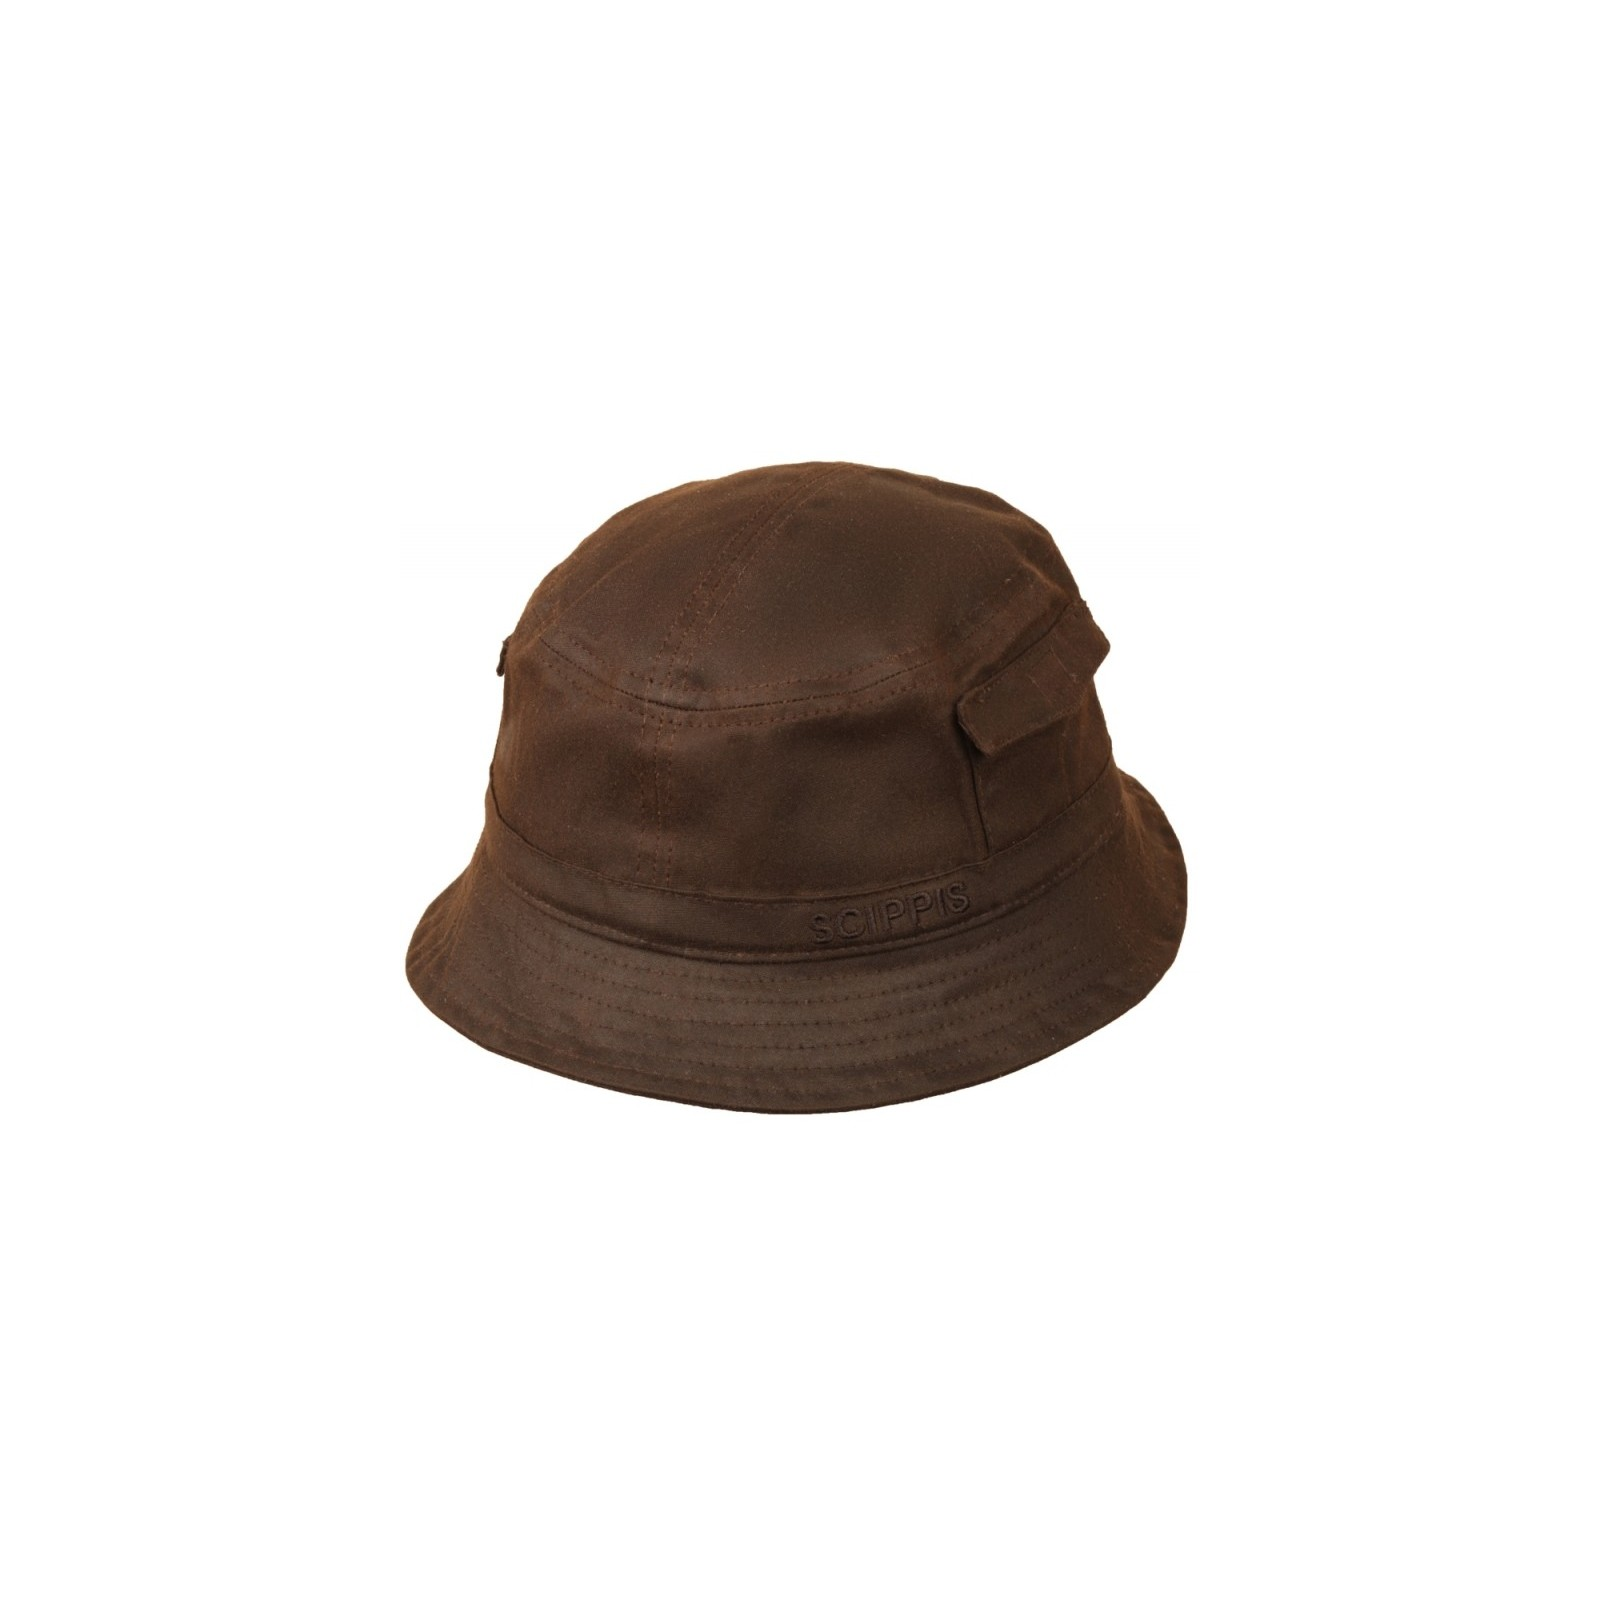 Scippis Riverman hat